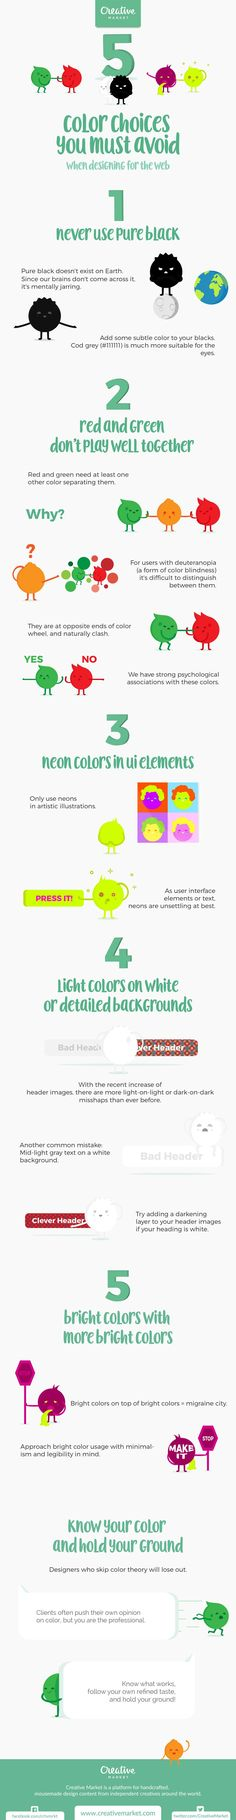 Infographic: Color Choices You Must Avoid When Designing for the Web